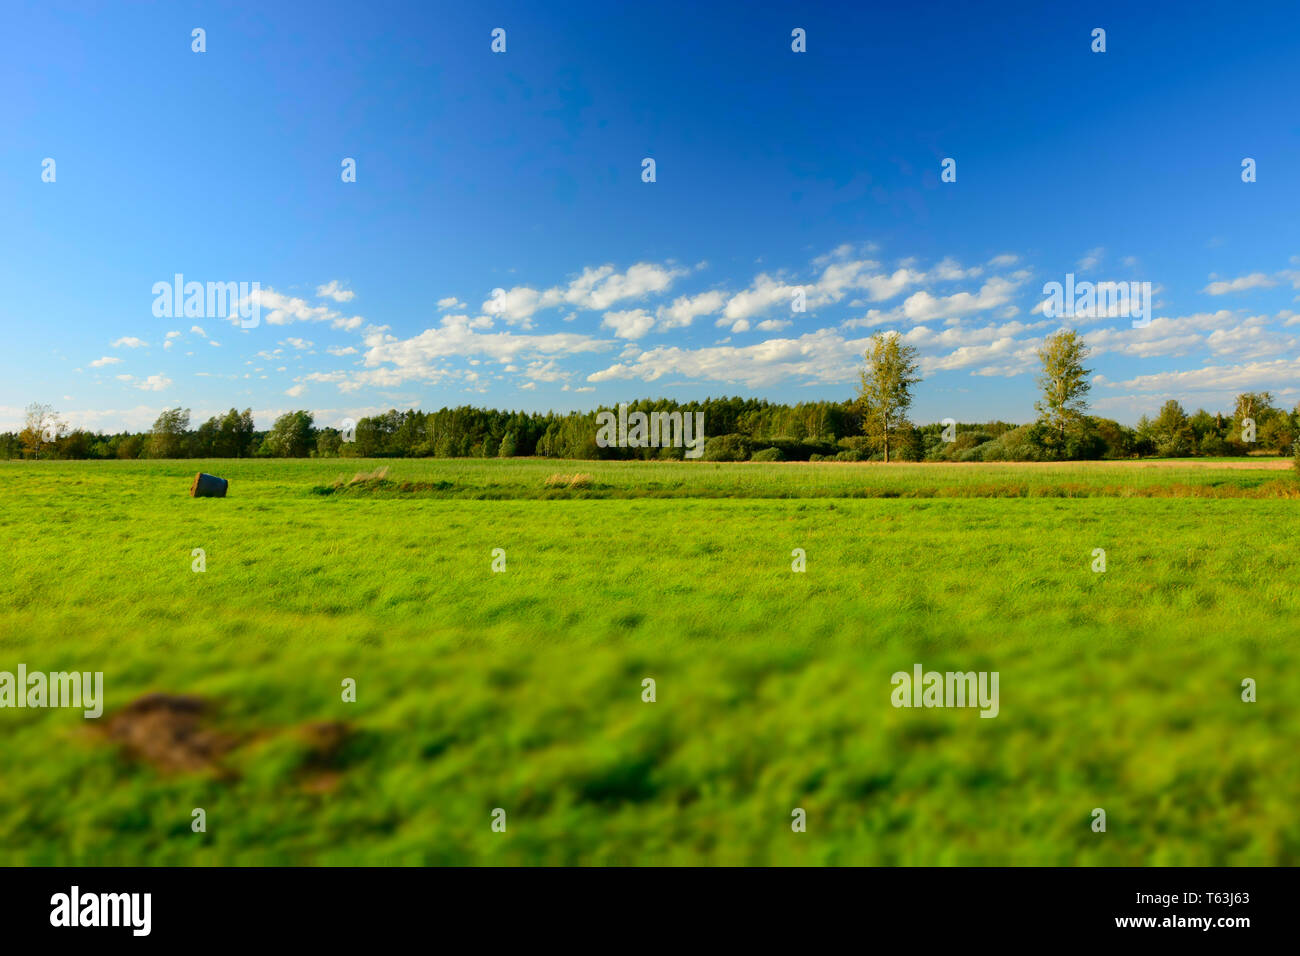 Green big meadow, forest and white clouds on blue sky - blur and contrasting colors - Stock Image